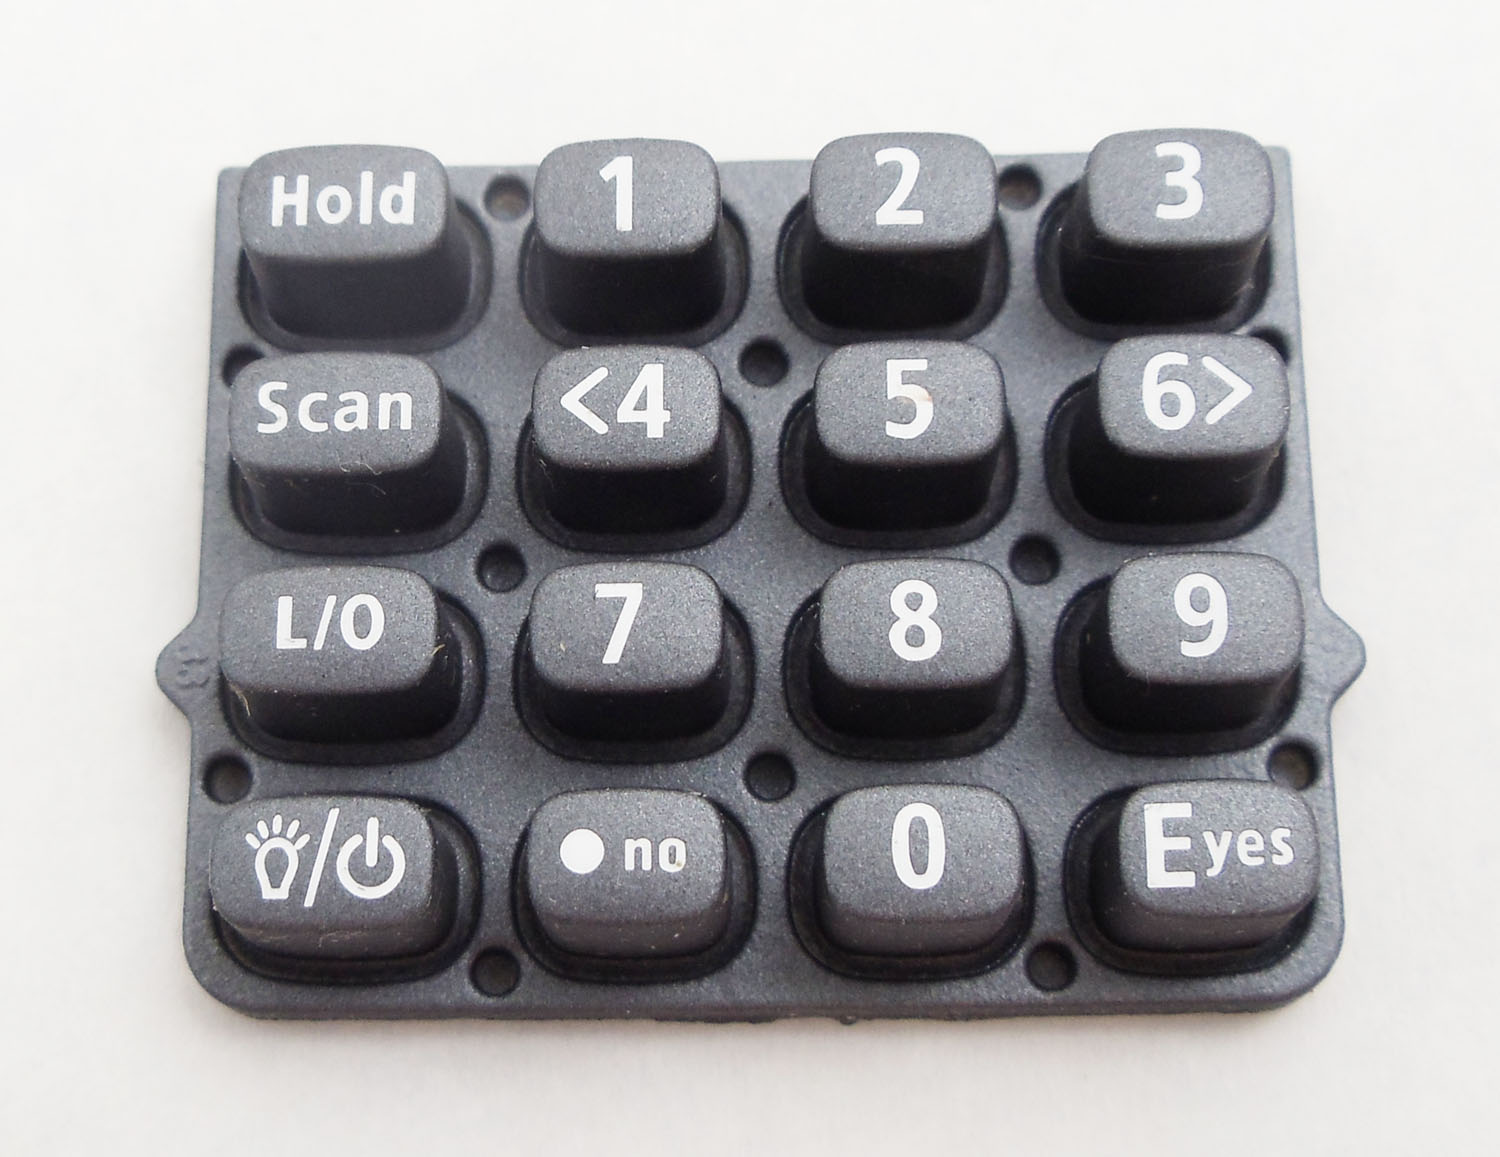 LNBZ4E0966Z -Uniden Replacement Key Pad For BCD396XT Scanner